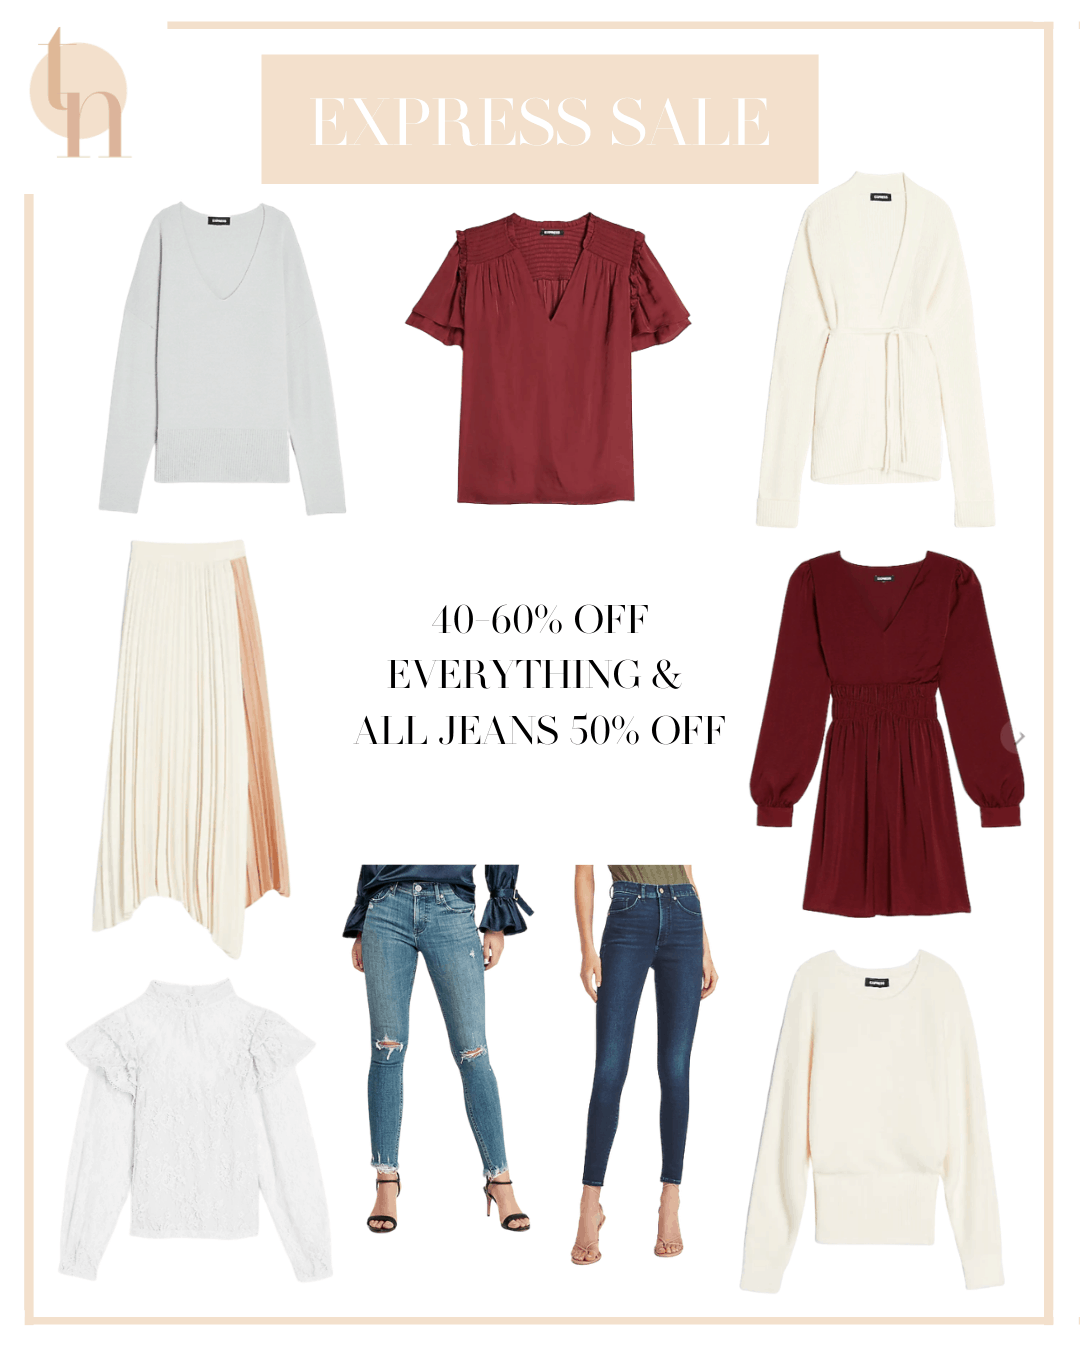 Labor Day Sales by popular Dallas life and style blog, Glamorous Versatility: collage image of Express jeans, sweaters, pleated skirt, maroon dress, and white ruffle top.